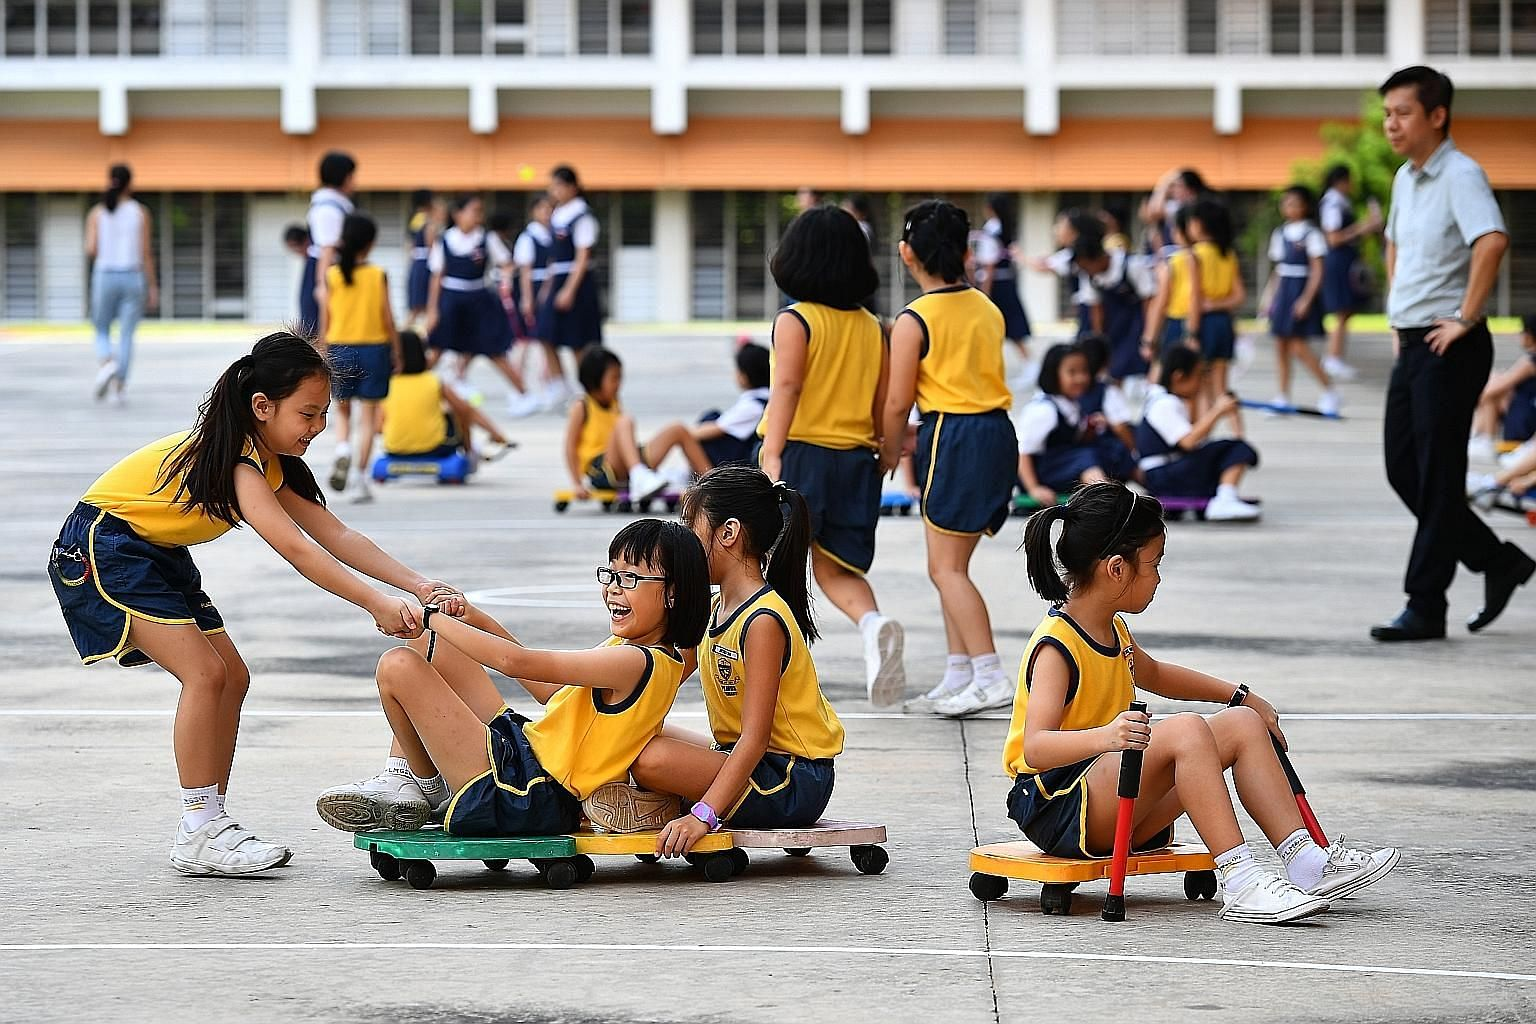 Paya Lebar Methodist Girls' School (Primary) pupils having fun during recess. The school's pupils can borrow equipment such as frisbees, badminton racquets, skipping ropes and roller racers during such breaks, with parent helpers and school staff on